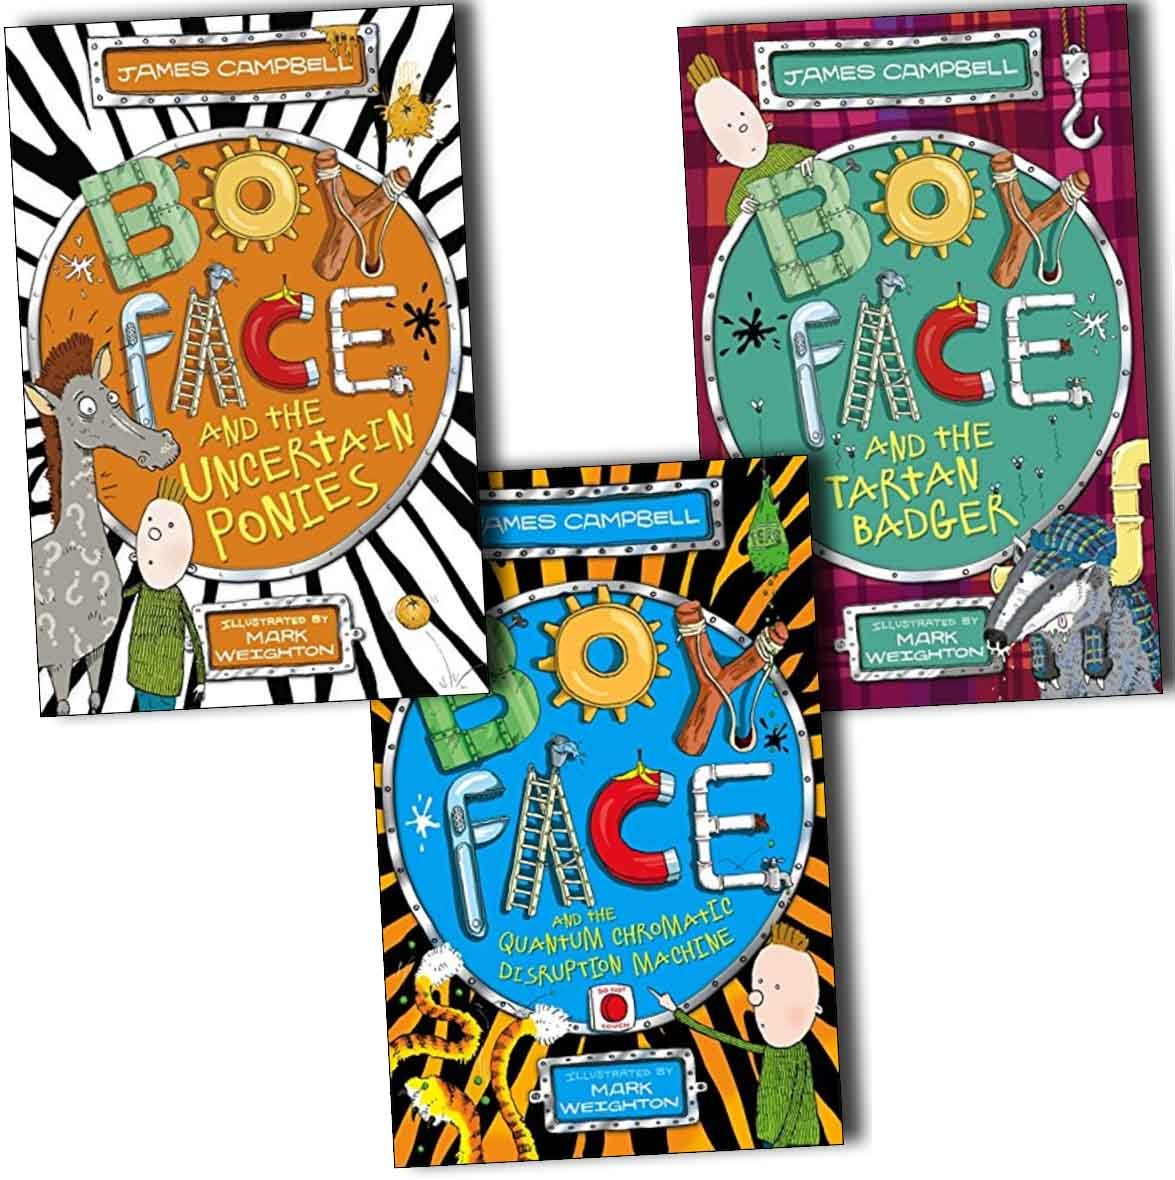 James Campbell Boyface 3 Books Collection Pack Set (Boyface and the Quantum Chromatic Disruption Machine, Boyface and the Tartan Badger, Boyface and the Uncertain Ponies) PDF